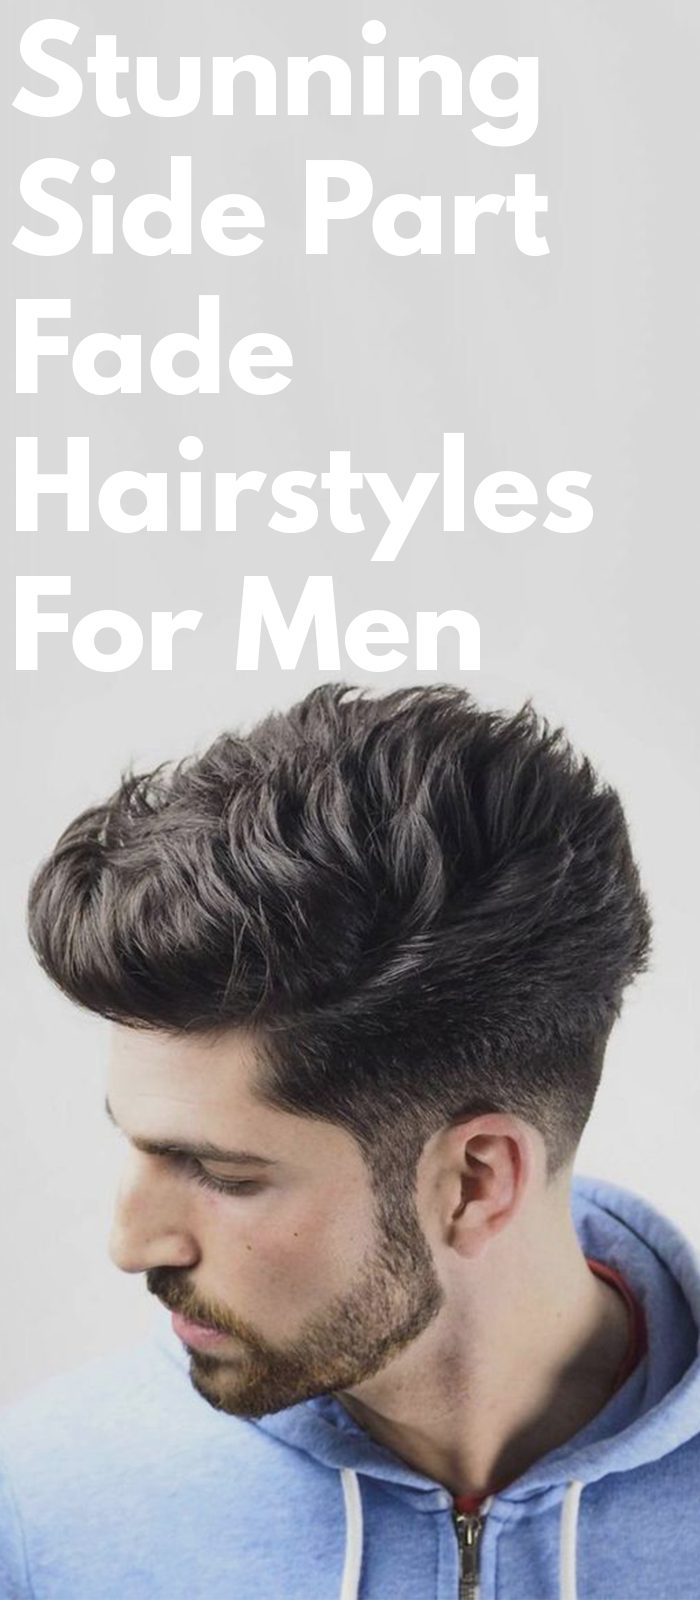 Stunning Side Part Fade Hairstyles For Men